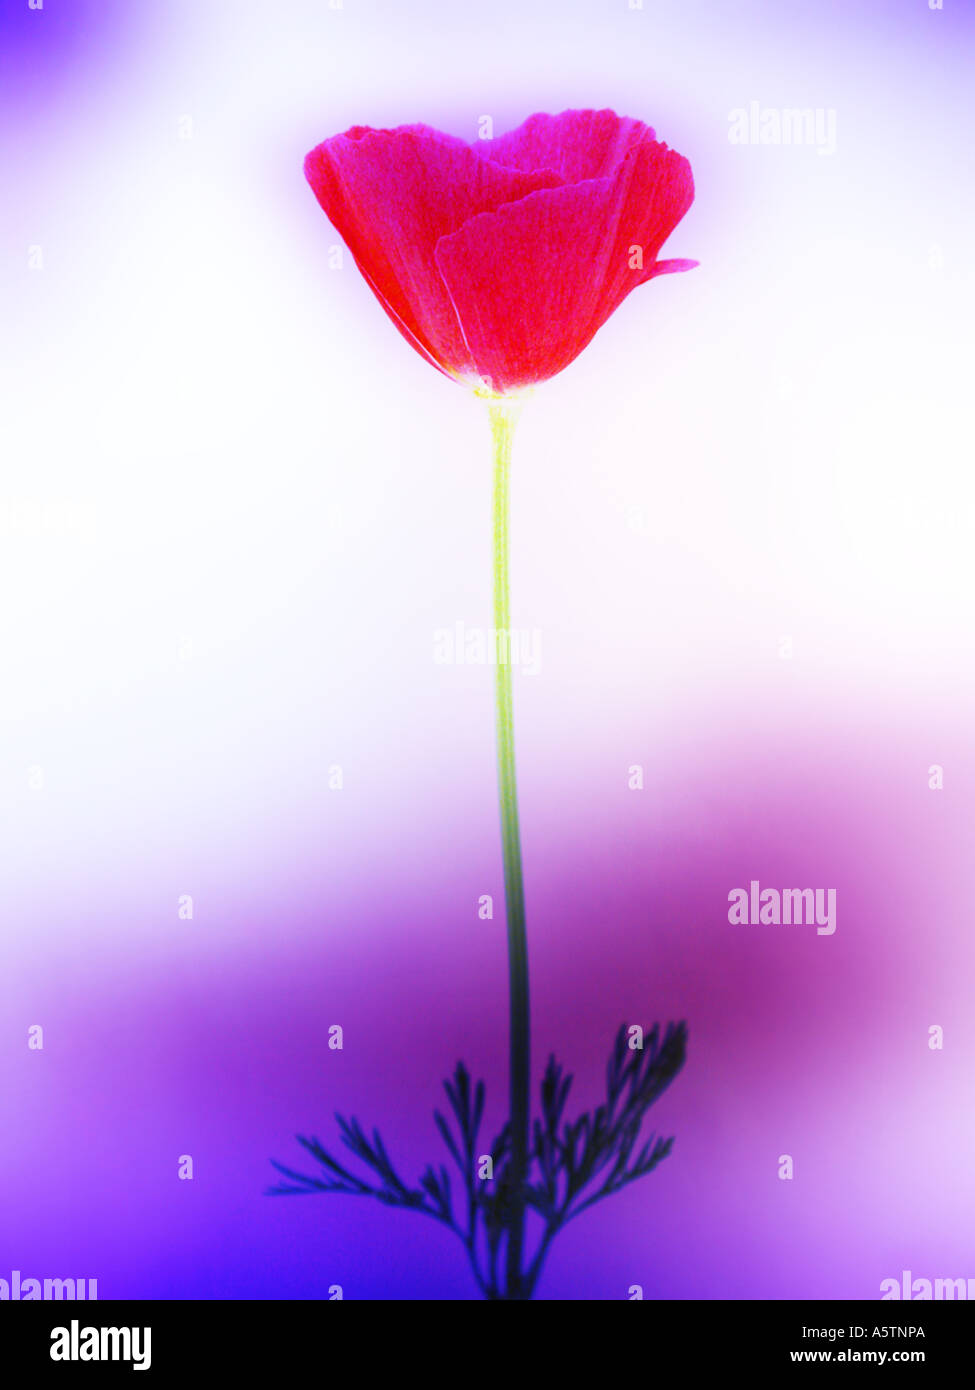 A color-enhanced single Poppy flower. - Stock Image